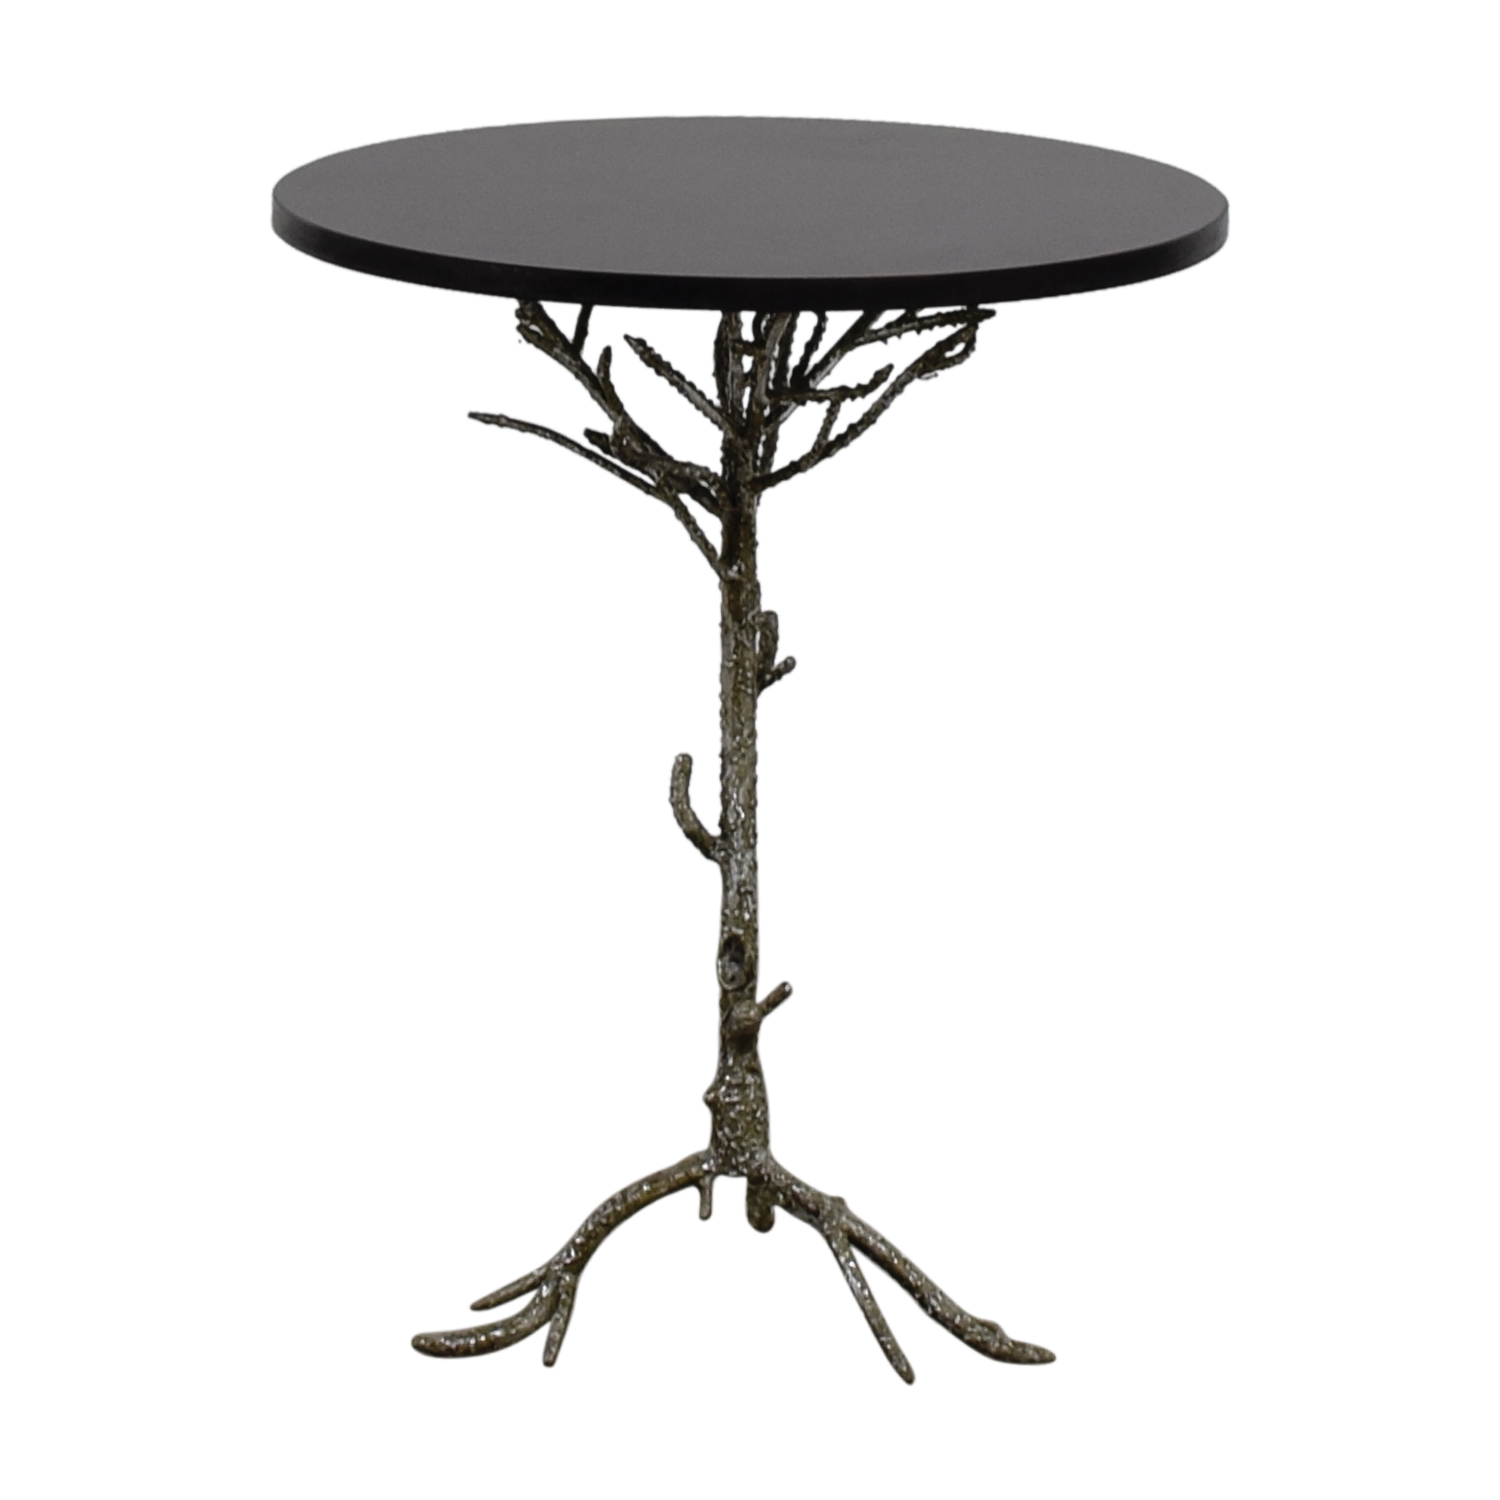 Safavieh Safavieh Rooted Accent Table Accent Tables